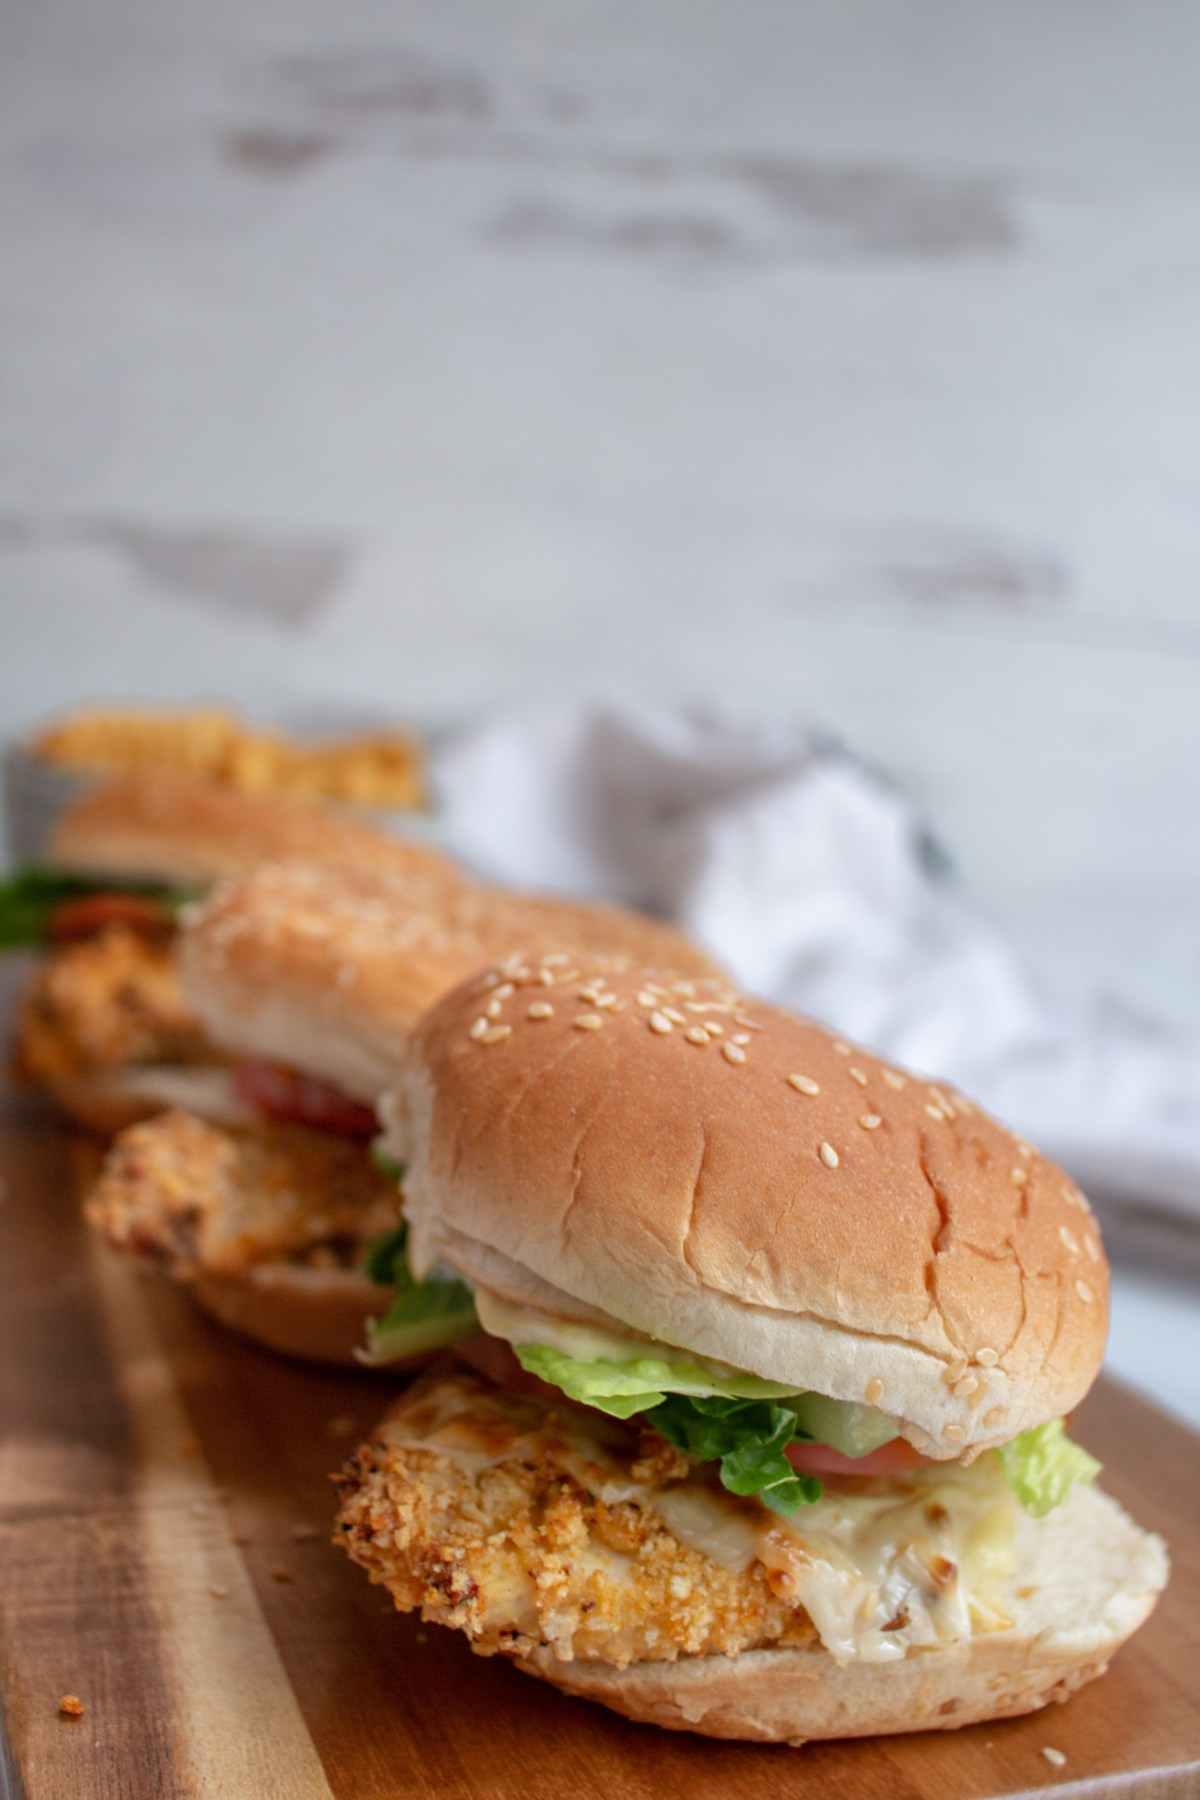 baked crispy chicken sandwich